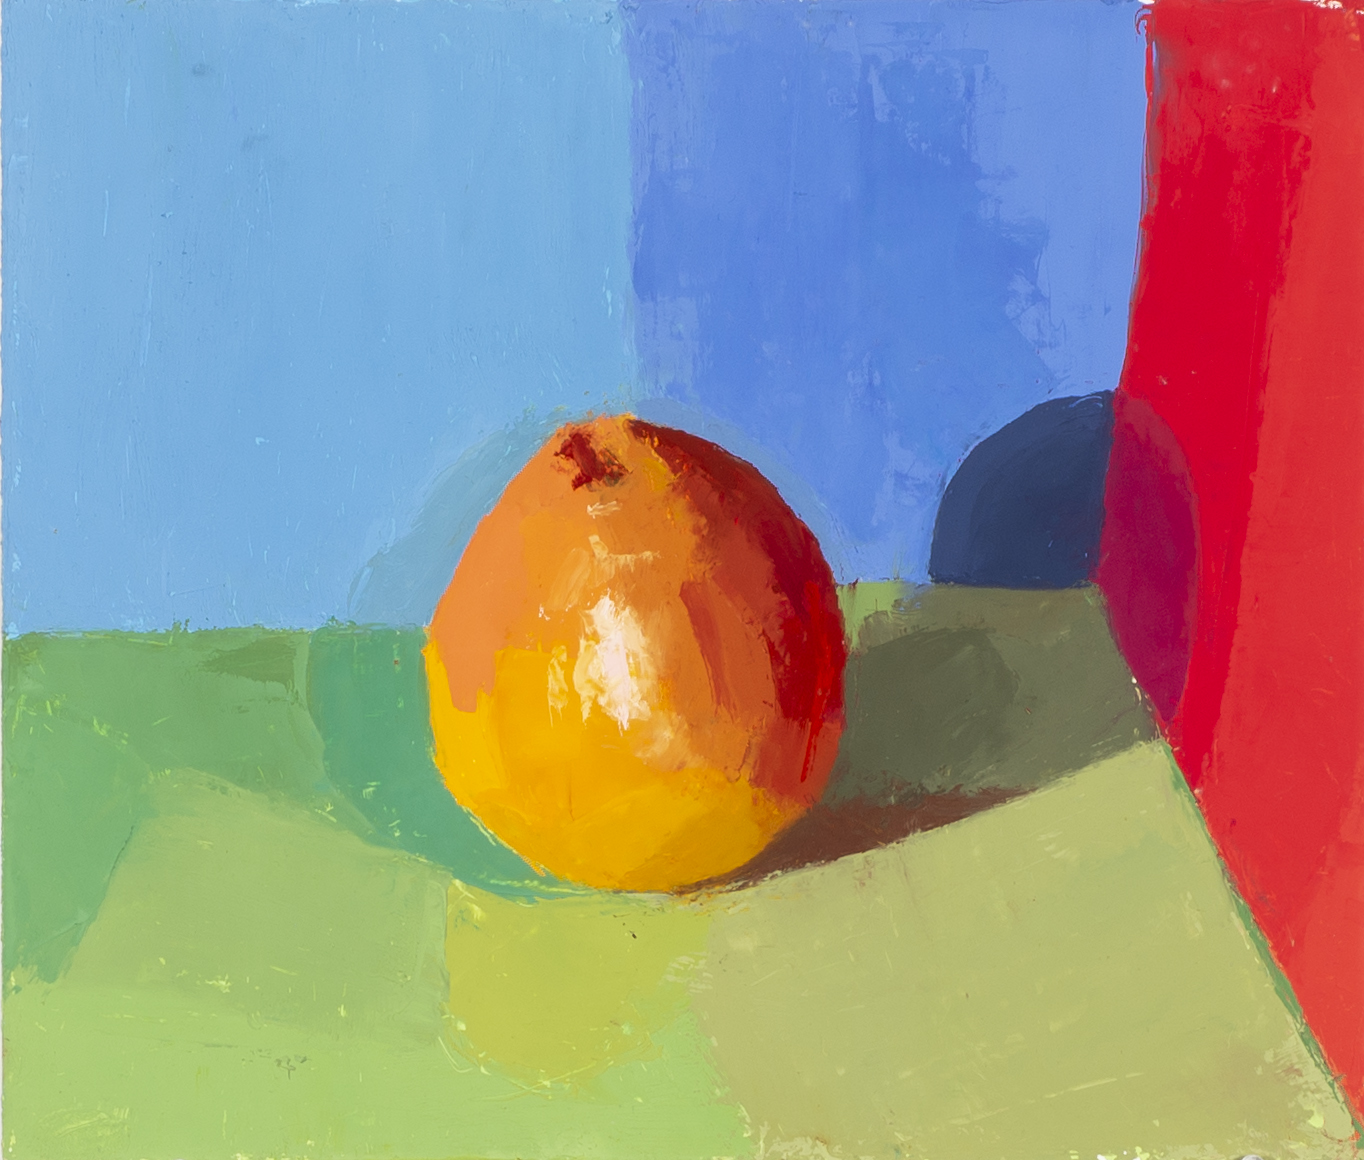 Lorfing_Regan_ColorBoxStudy_FinalDocumentation.jpg